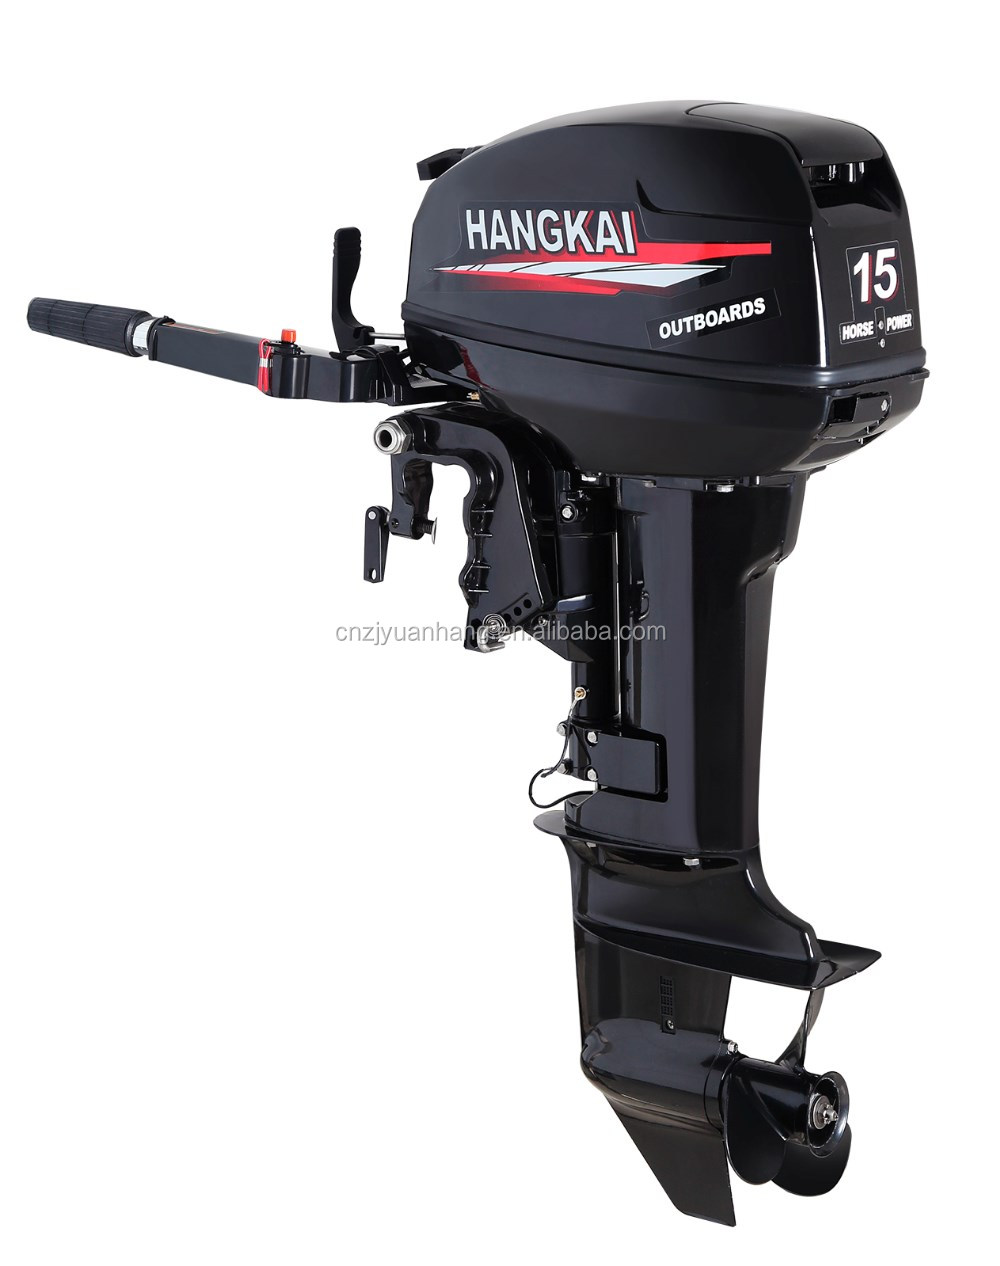 Short Shaft 2 Stroke 15hp Outboard Motor For Inflatable